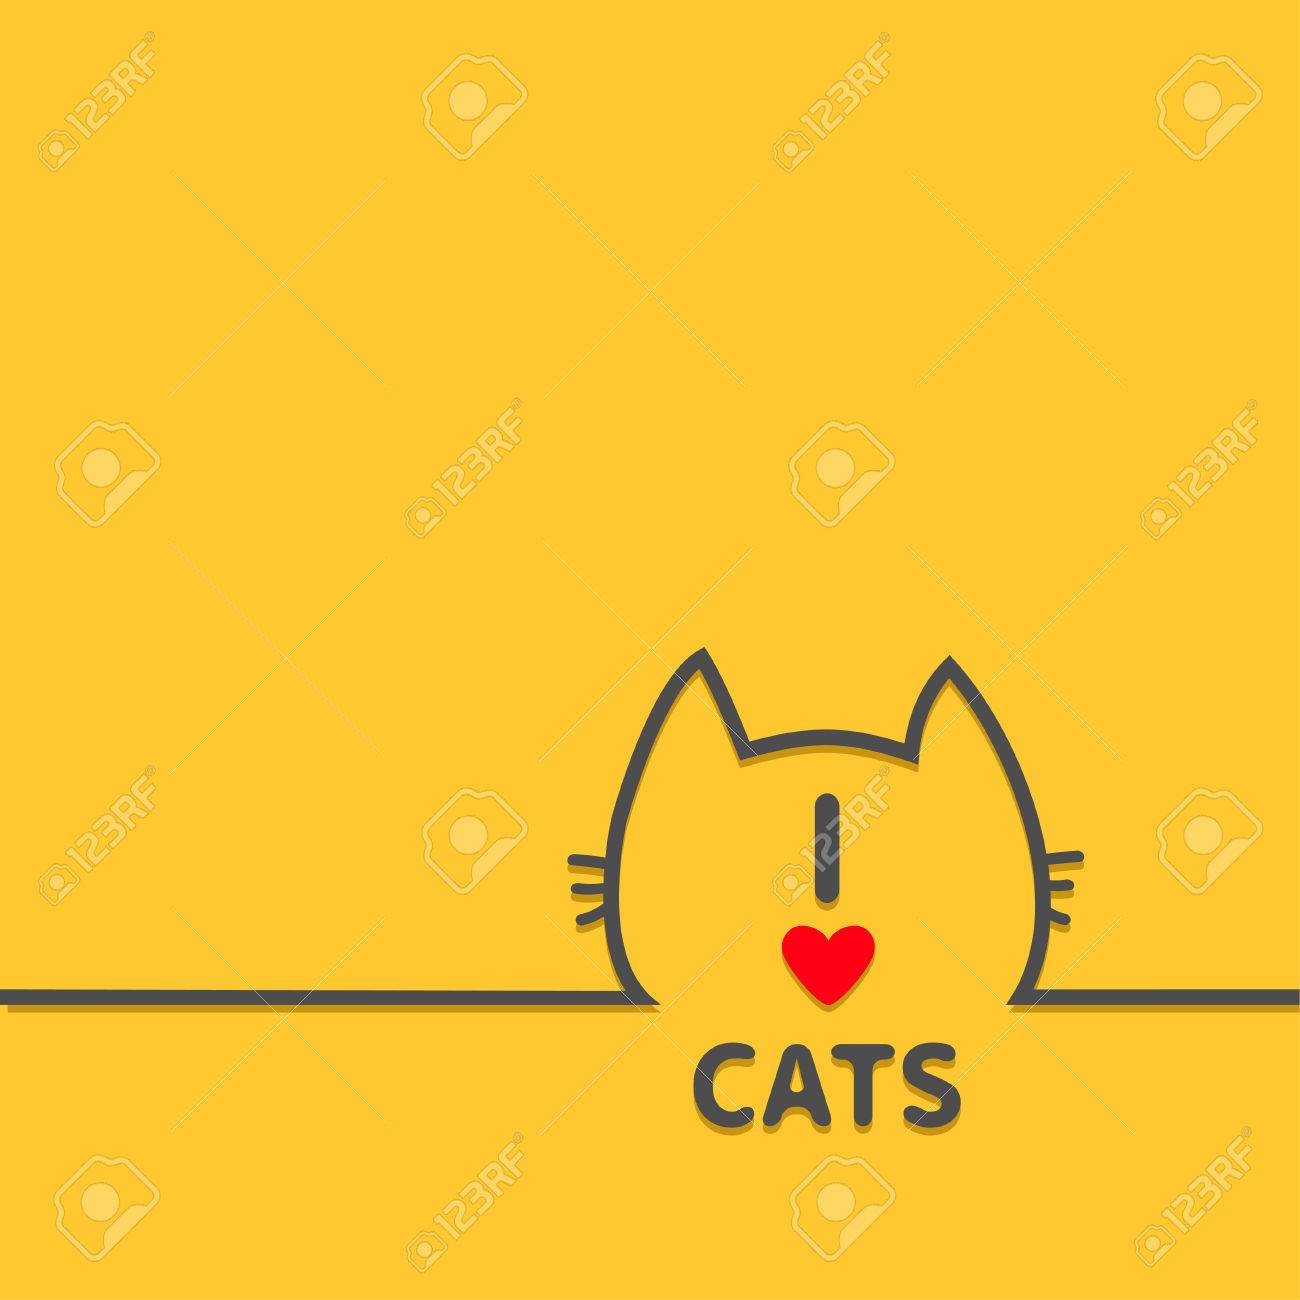 Black Cat Head Face Contour Silhouette Line Icon Cute Cartoon